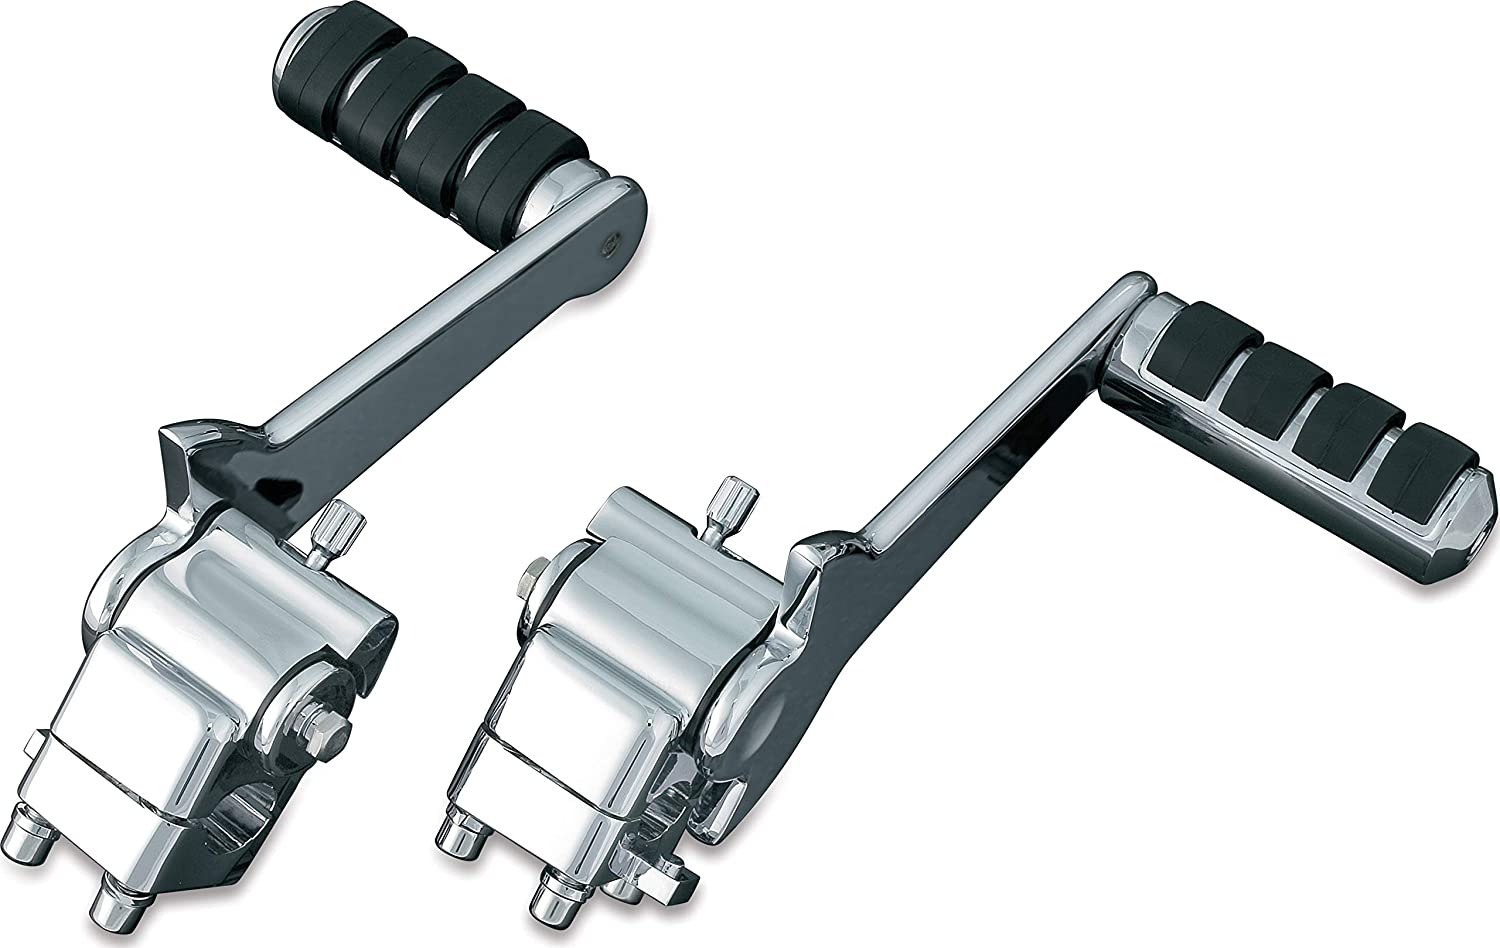 Kuryakyn 7926 Motorcycle Footpegs 1 Pair Adjustable Passenger Pegs for 1993-2006 Harley-Davidson Motorcycles with Fixed Mounts Chrome